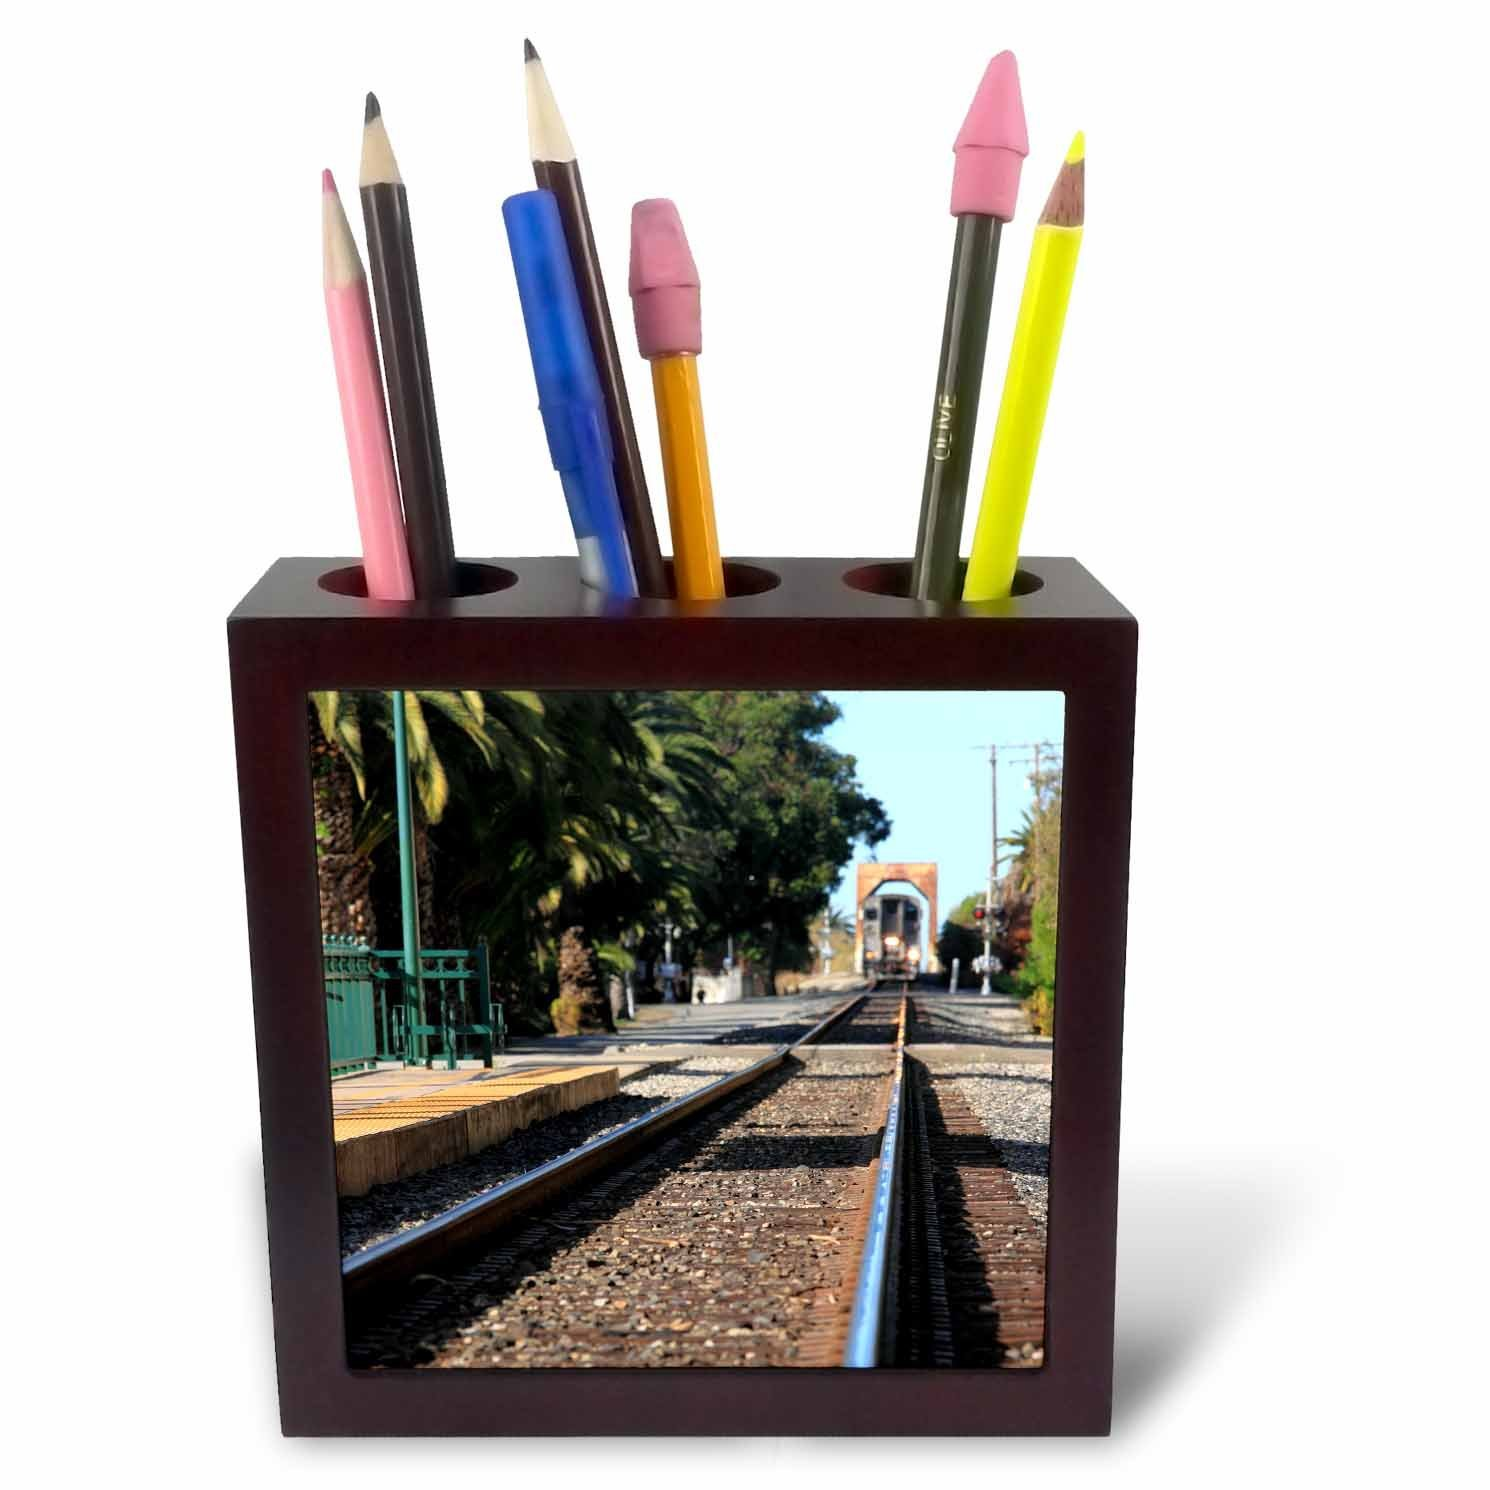 Henrik Lehnerer Designs - Transportation - Ventura Train Station California with a view of the tracks and train. - 5 inch tile pen holder (ph_240389_1)